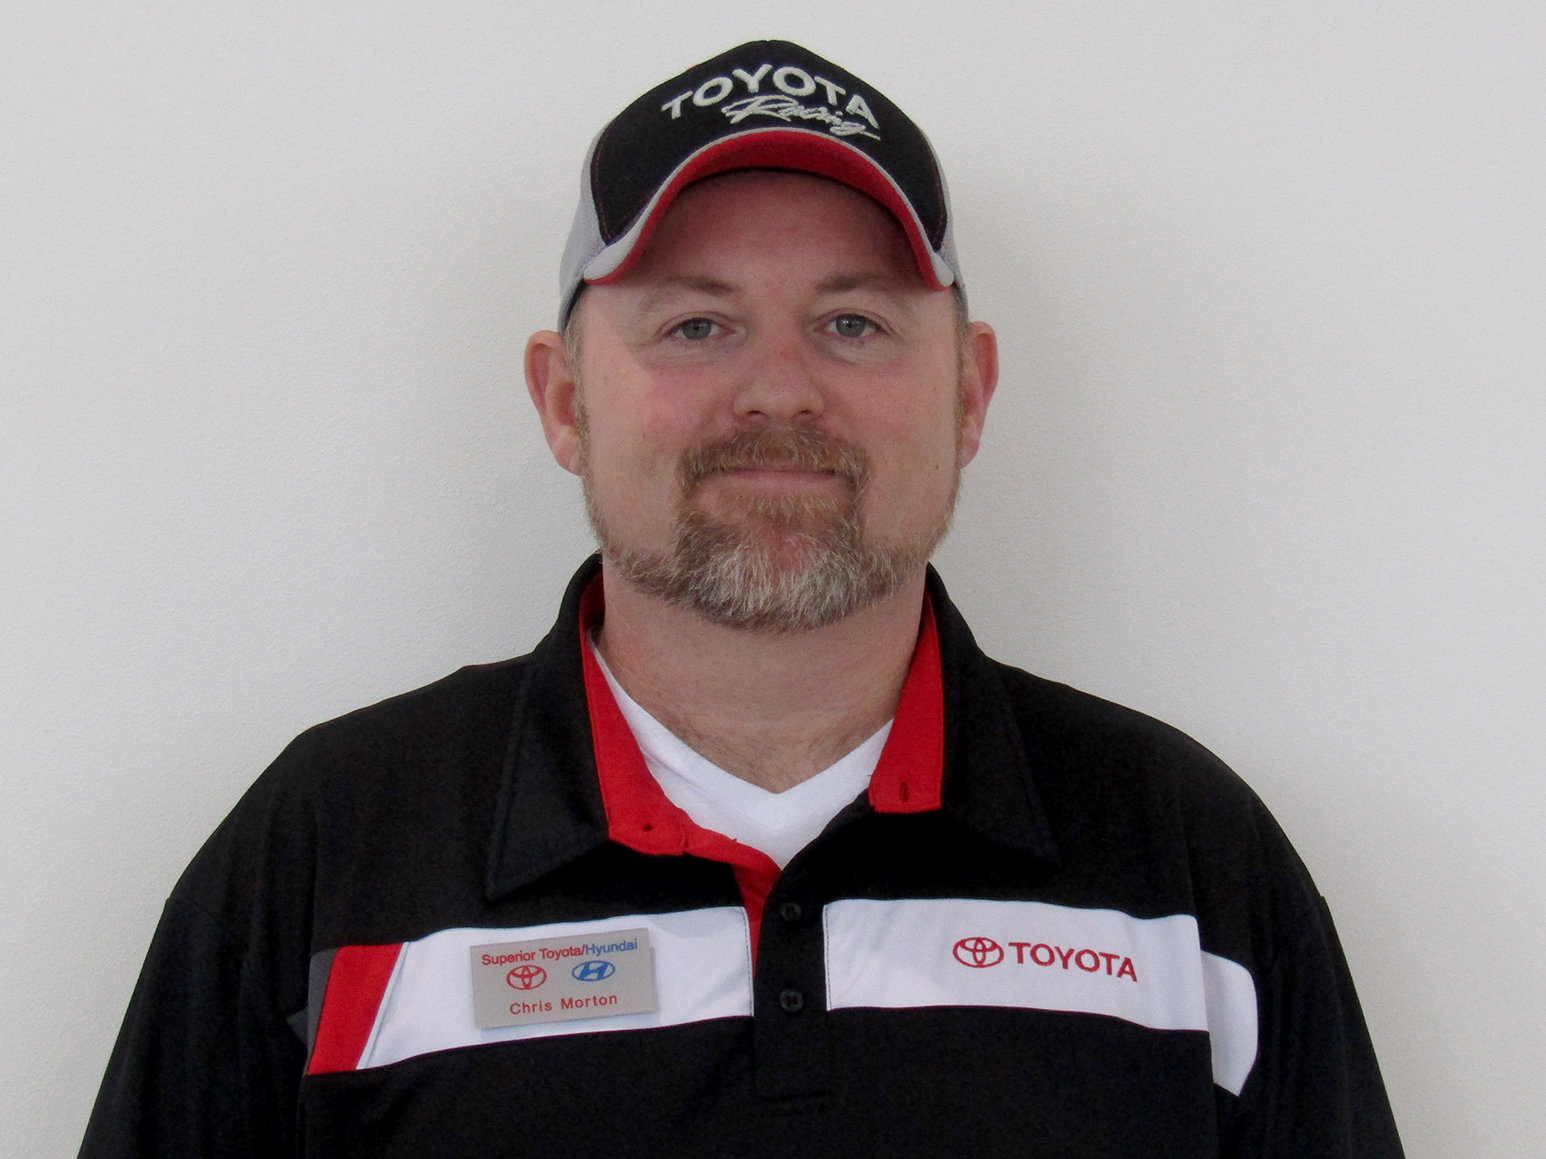 Chris Morton - Service Manager